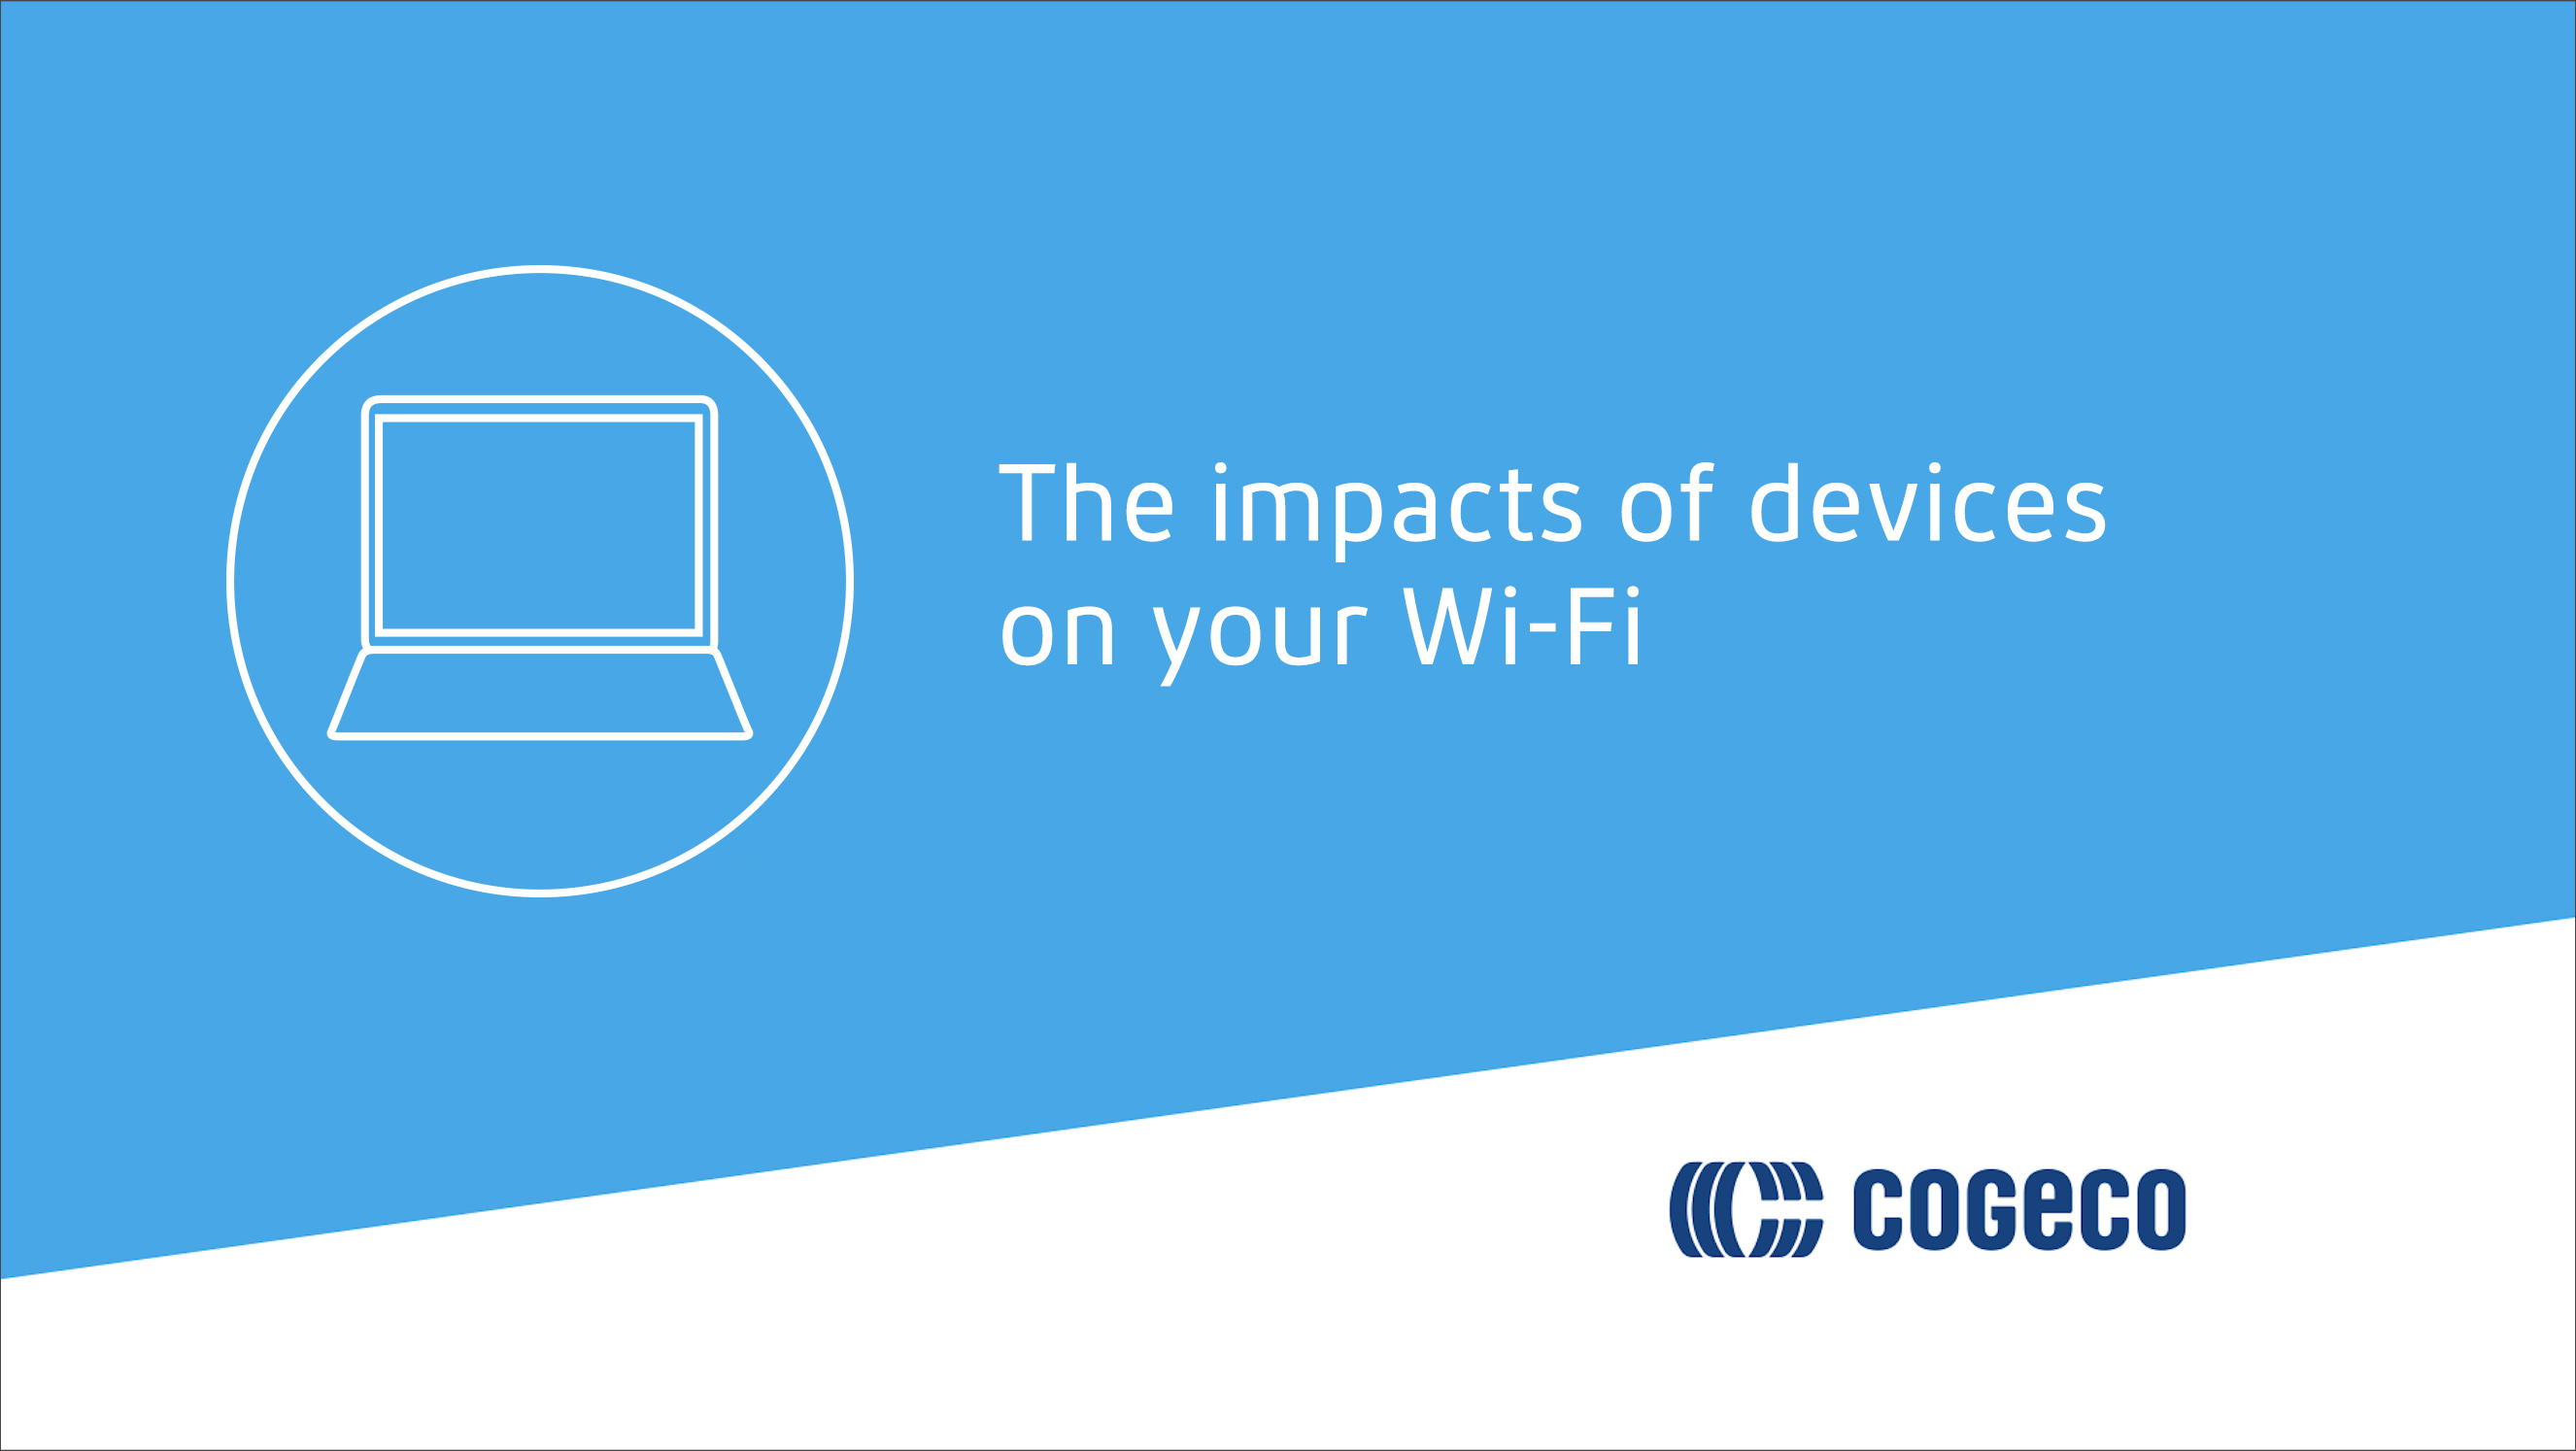 The impacts of devices on your WI-FI